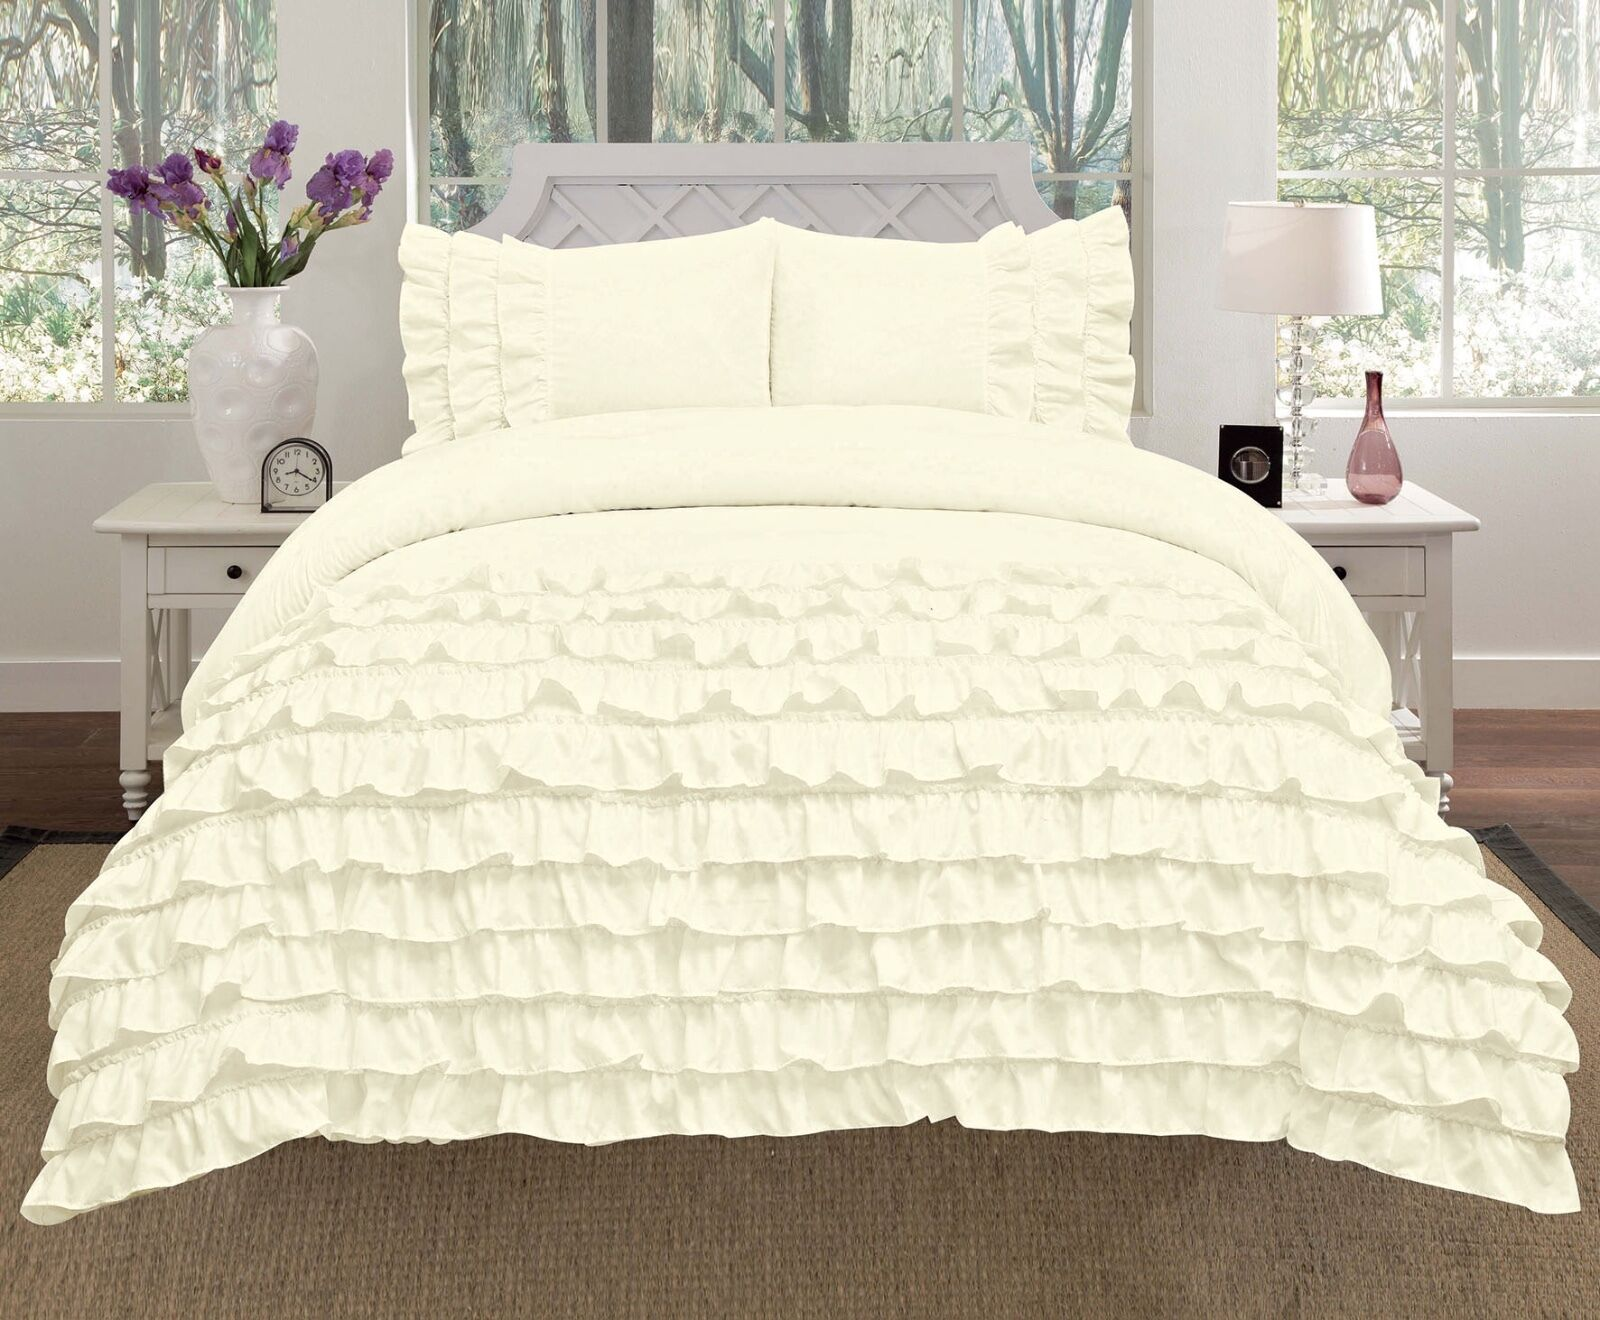 Miley 3-Piece Waterfall Ruffled Comforter Set Bedding - Ivory